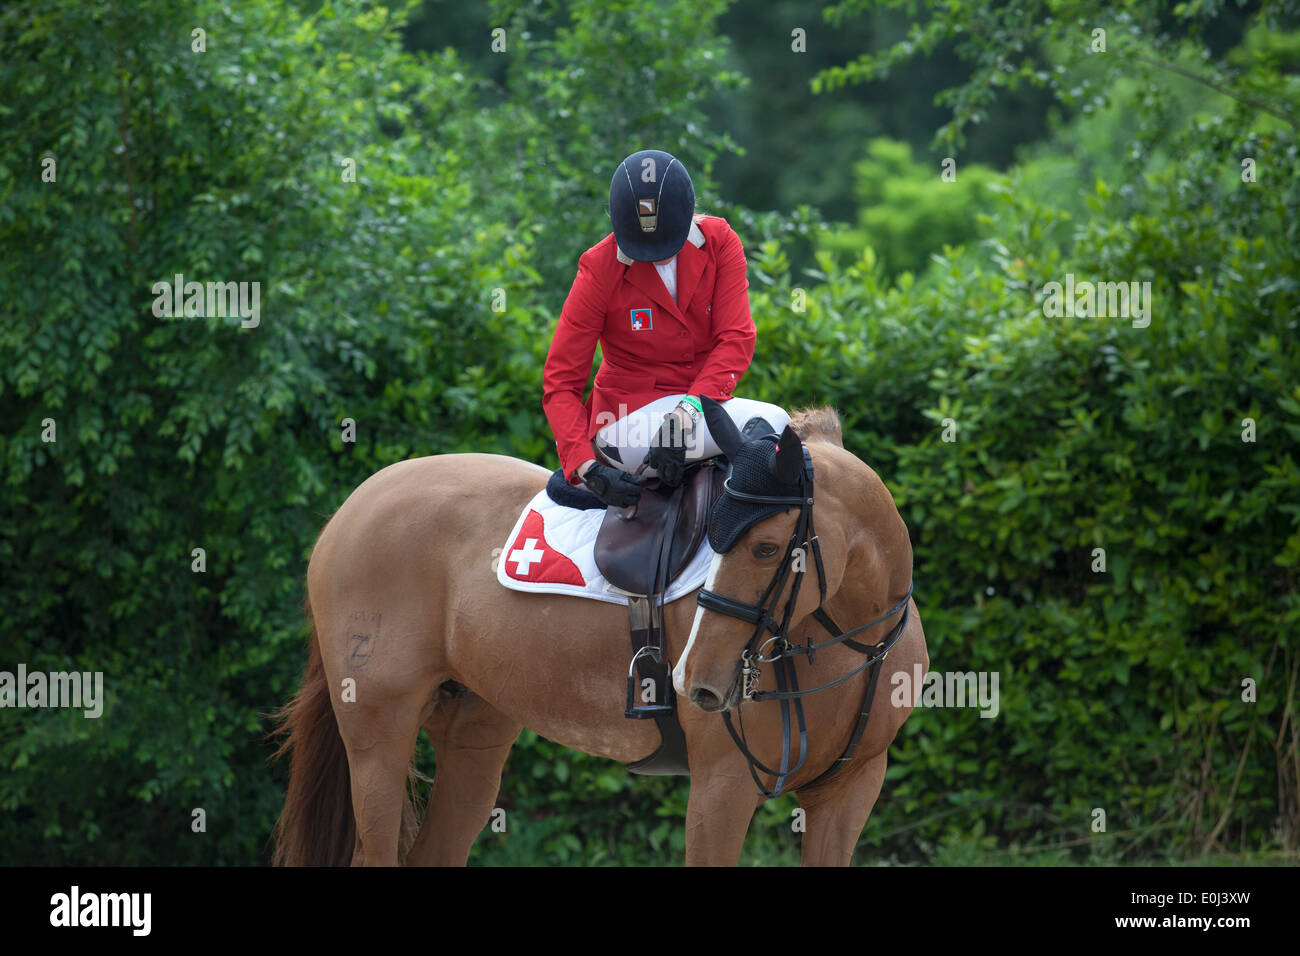 Christina Liebherr on LB Callas Sitte riding in paddock at the Piazza di Siena show jumping event in Villa Borghese in Rome 2013 - Stock Image